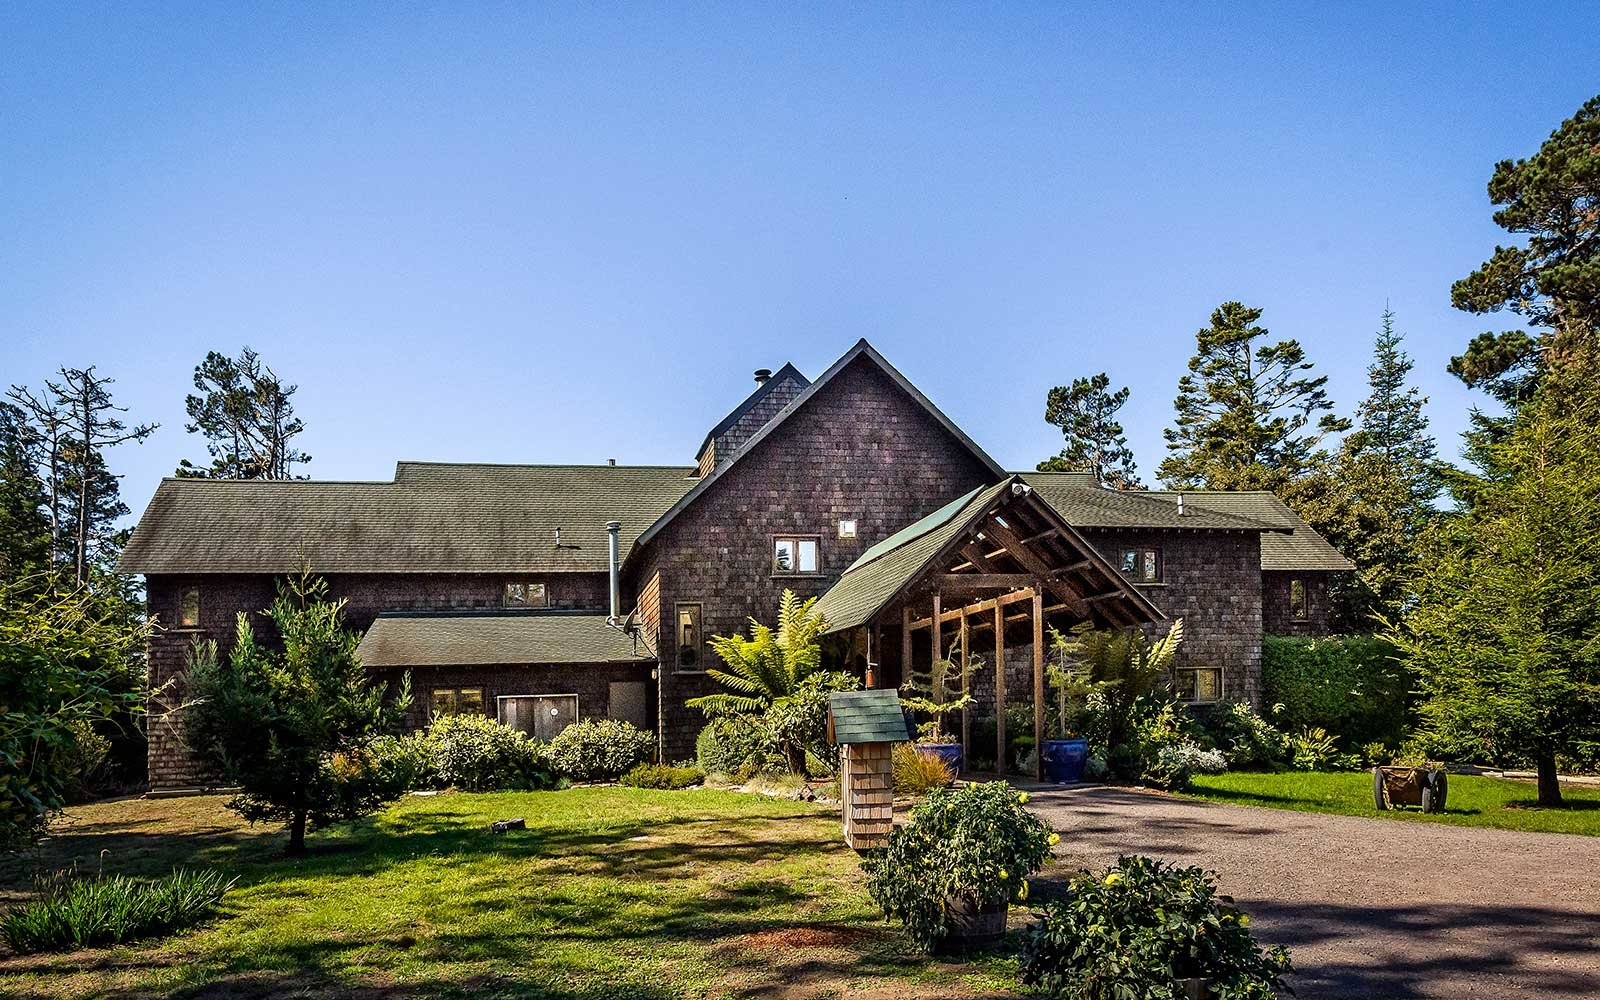 Brewery Gulch Inn Resort Hotel in California